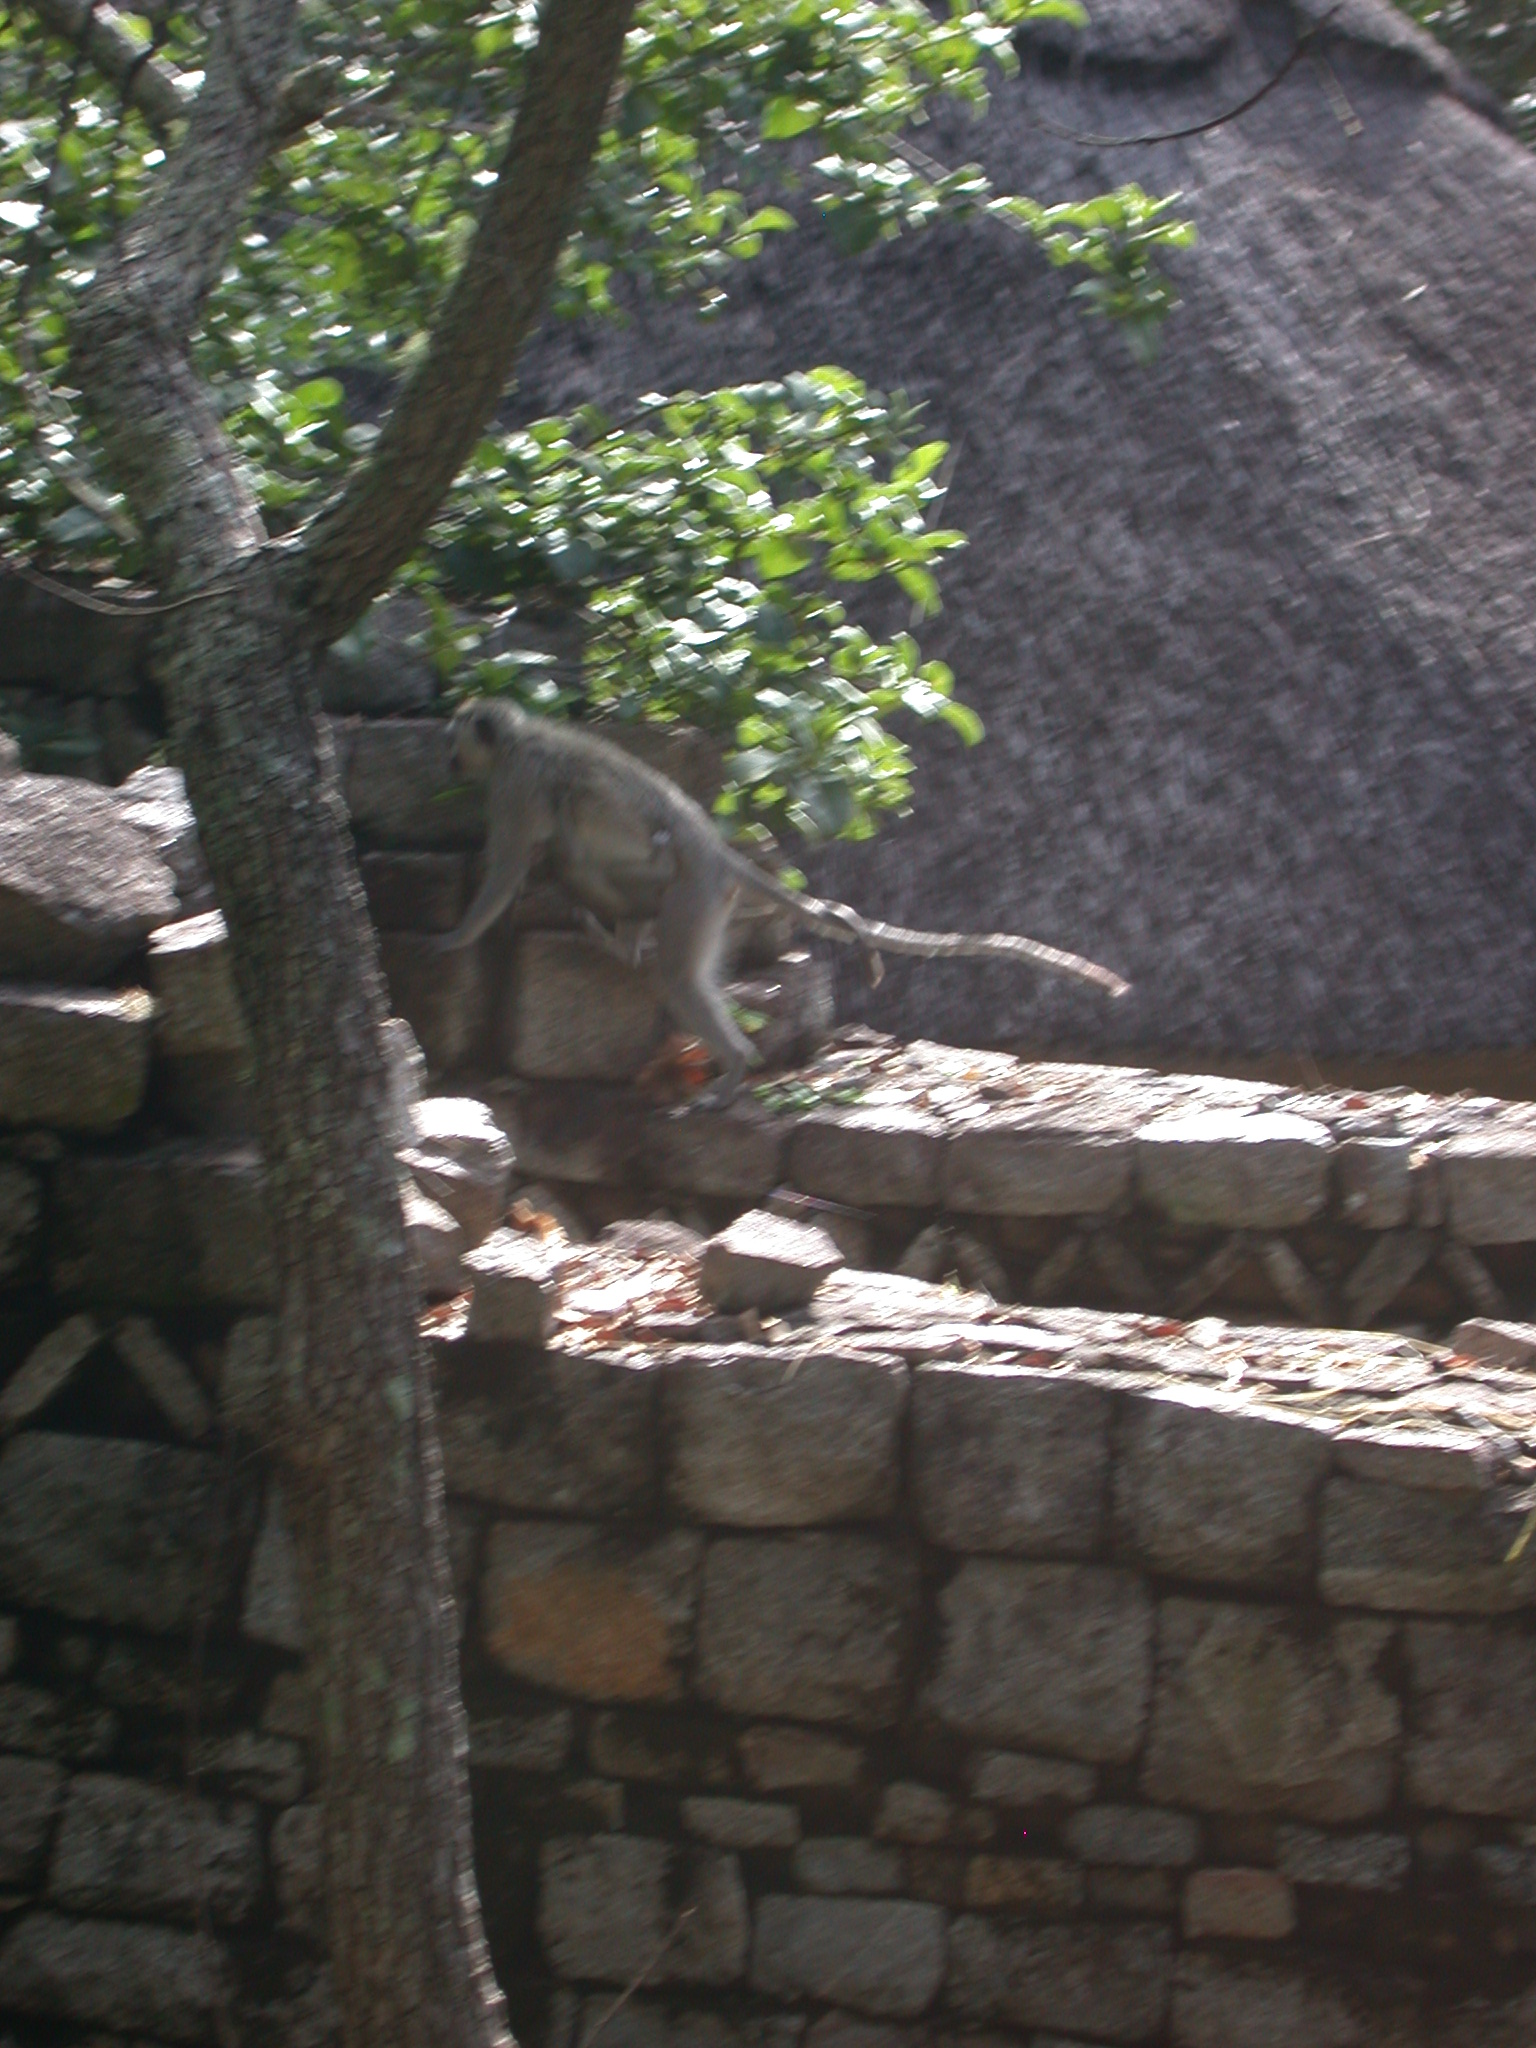 Monkey Holding Baby Monkey on Wall Outside My Suite at the Ancient City Lodge, Great Zimbabwe, Outside Masvingo, Zimbabwe